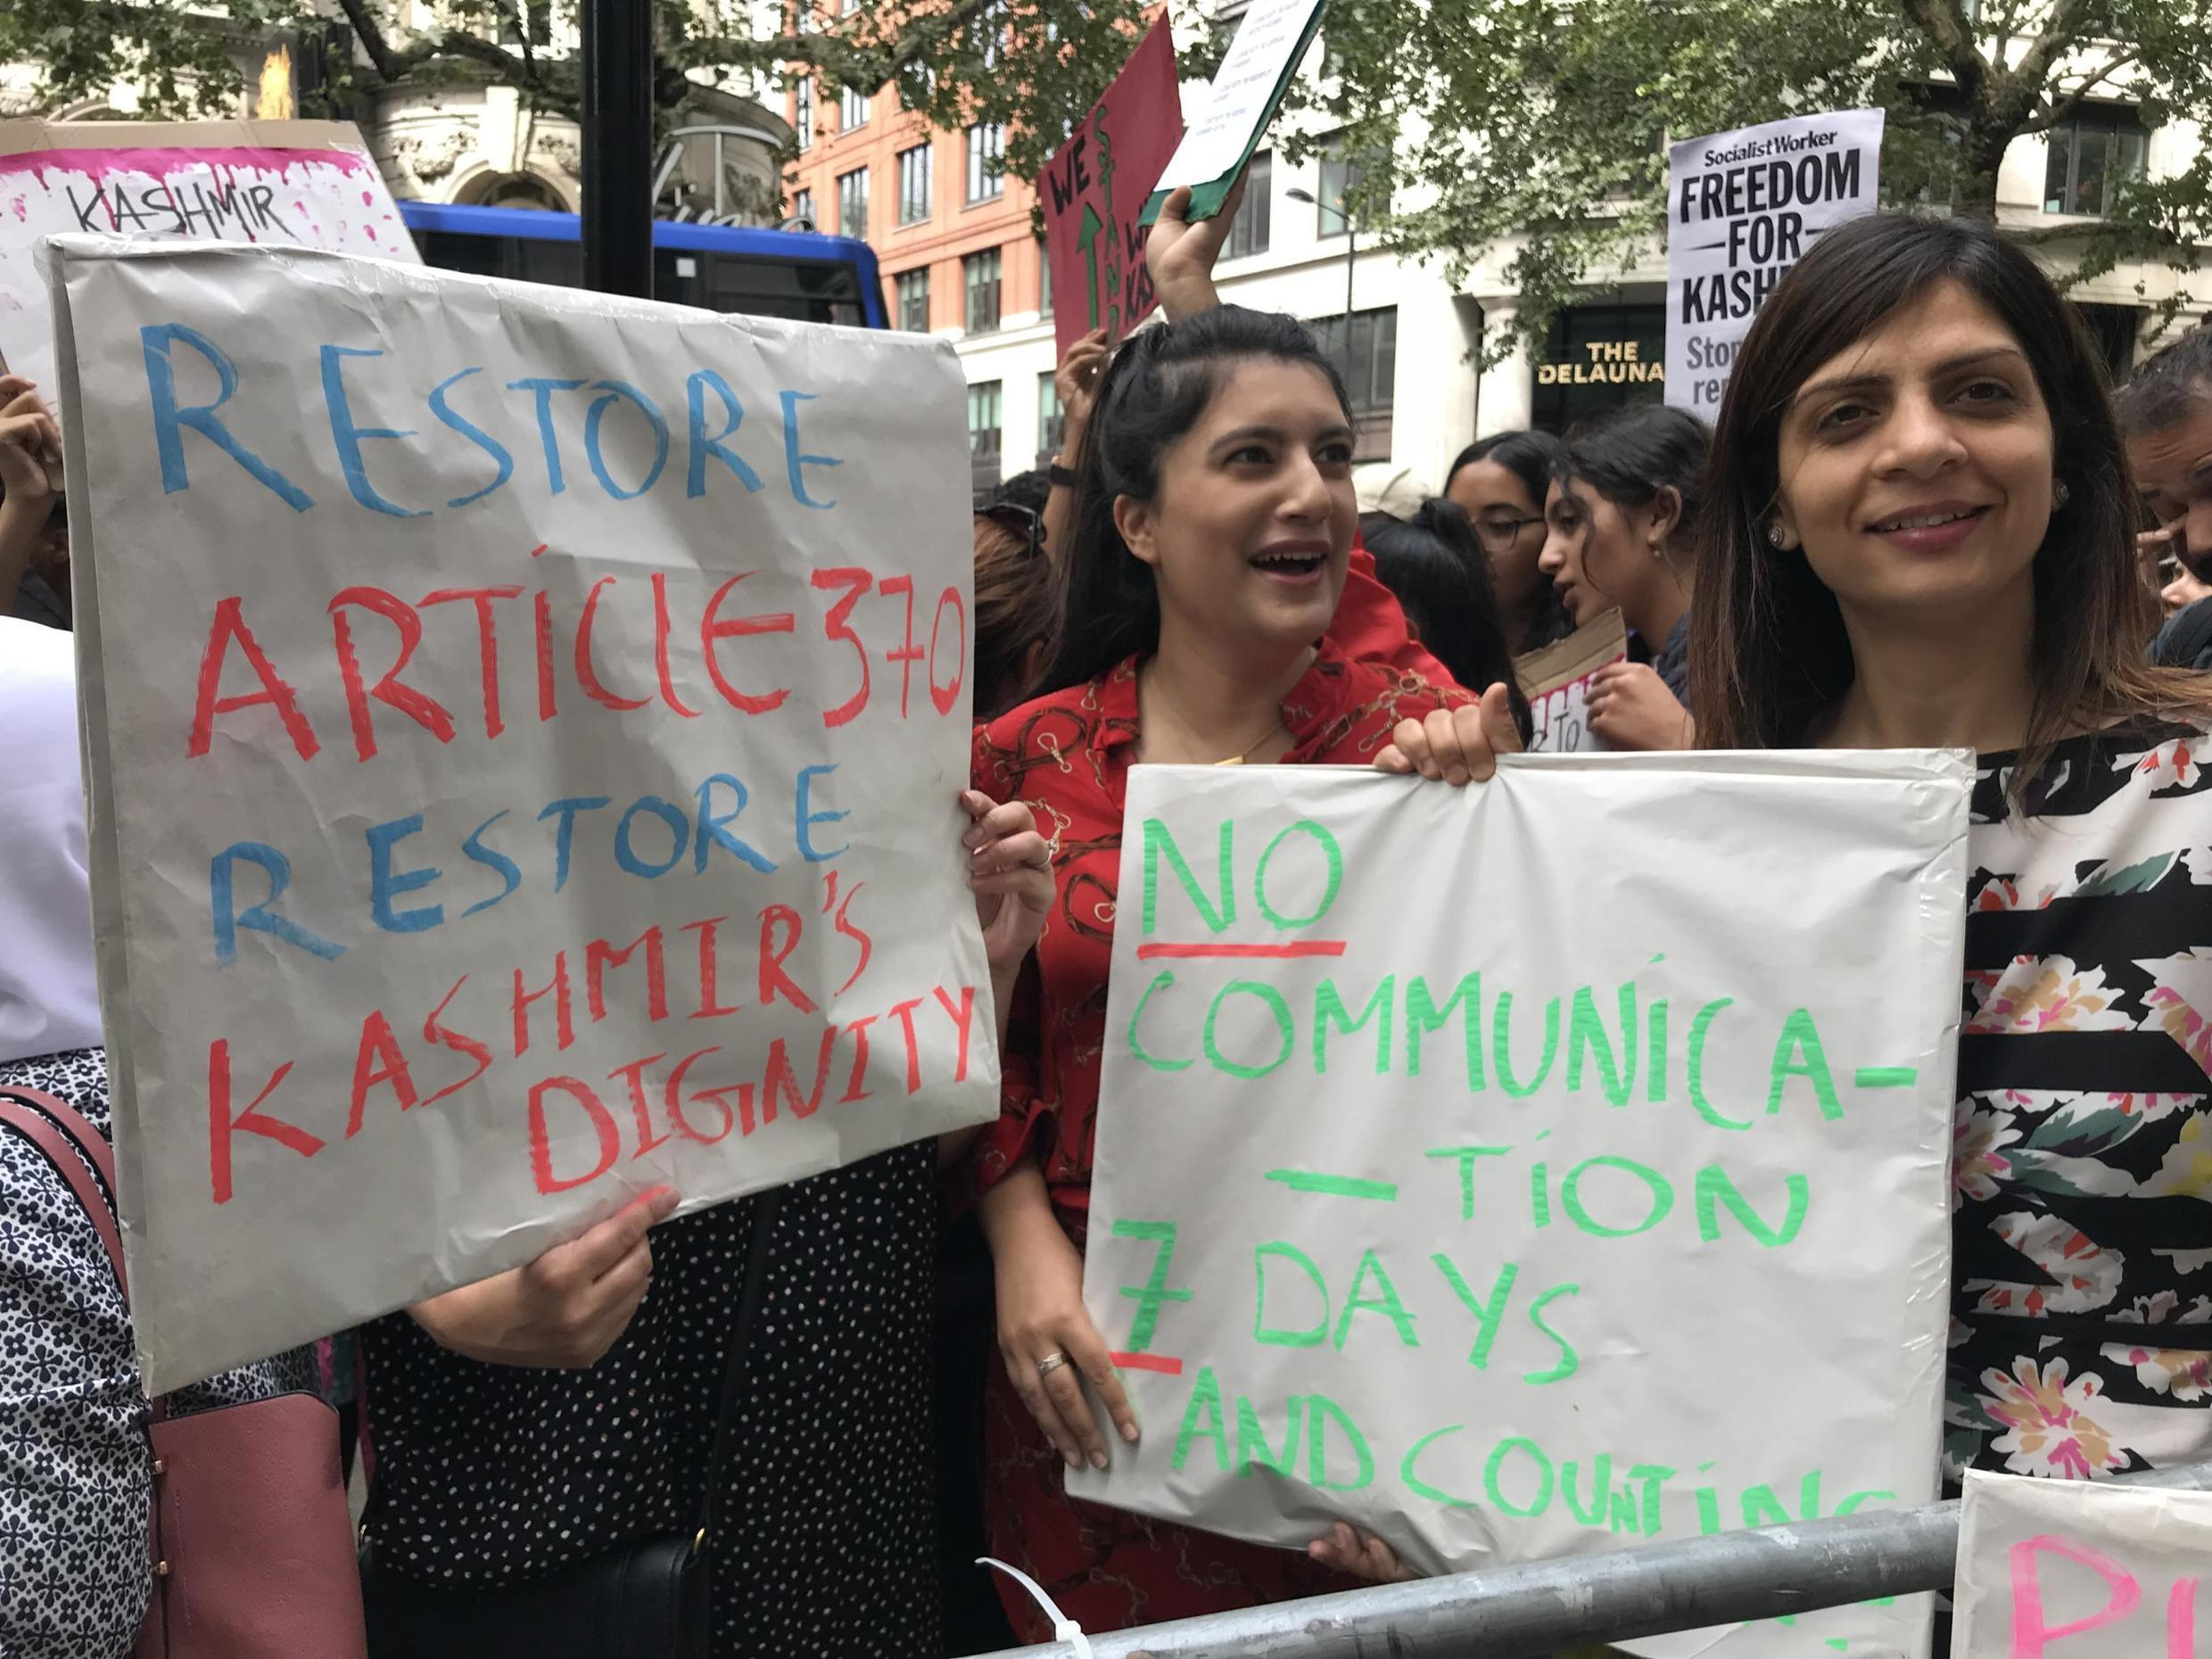 Protesters in London hold signs expressing solidarity with Kashmir after India scrapped the region's special constitutional status, August 10, 2019.